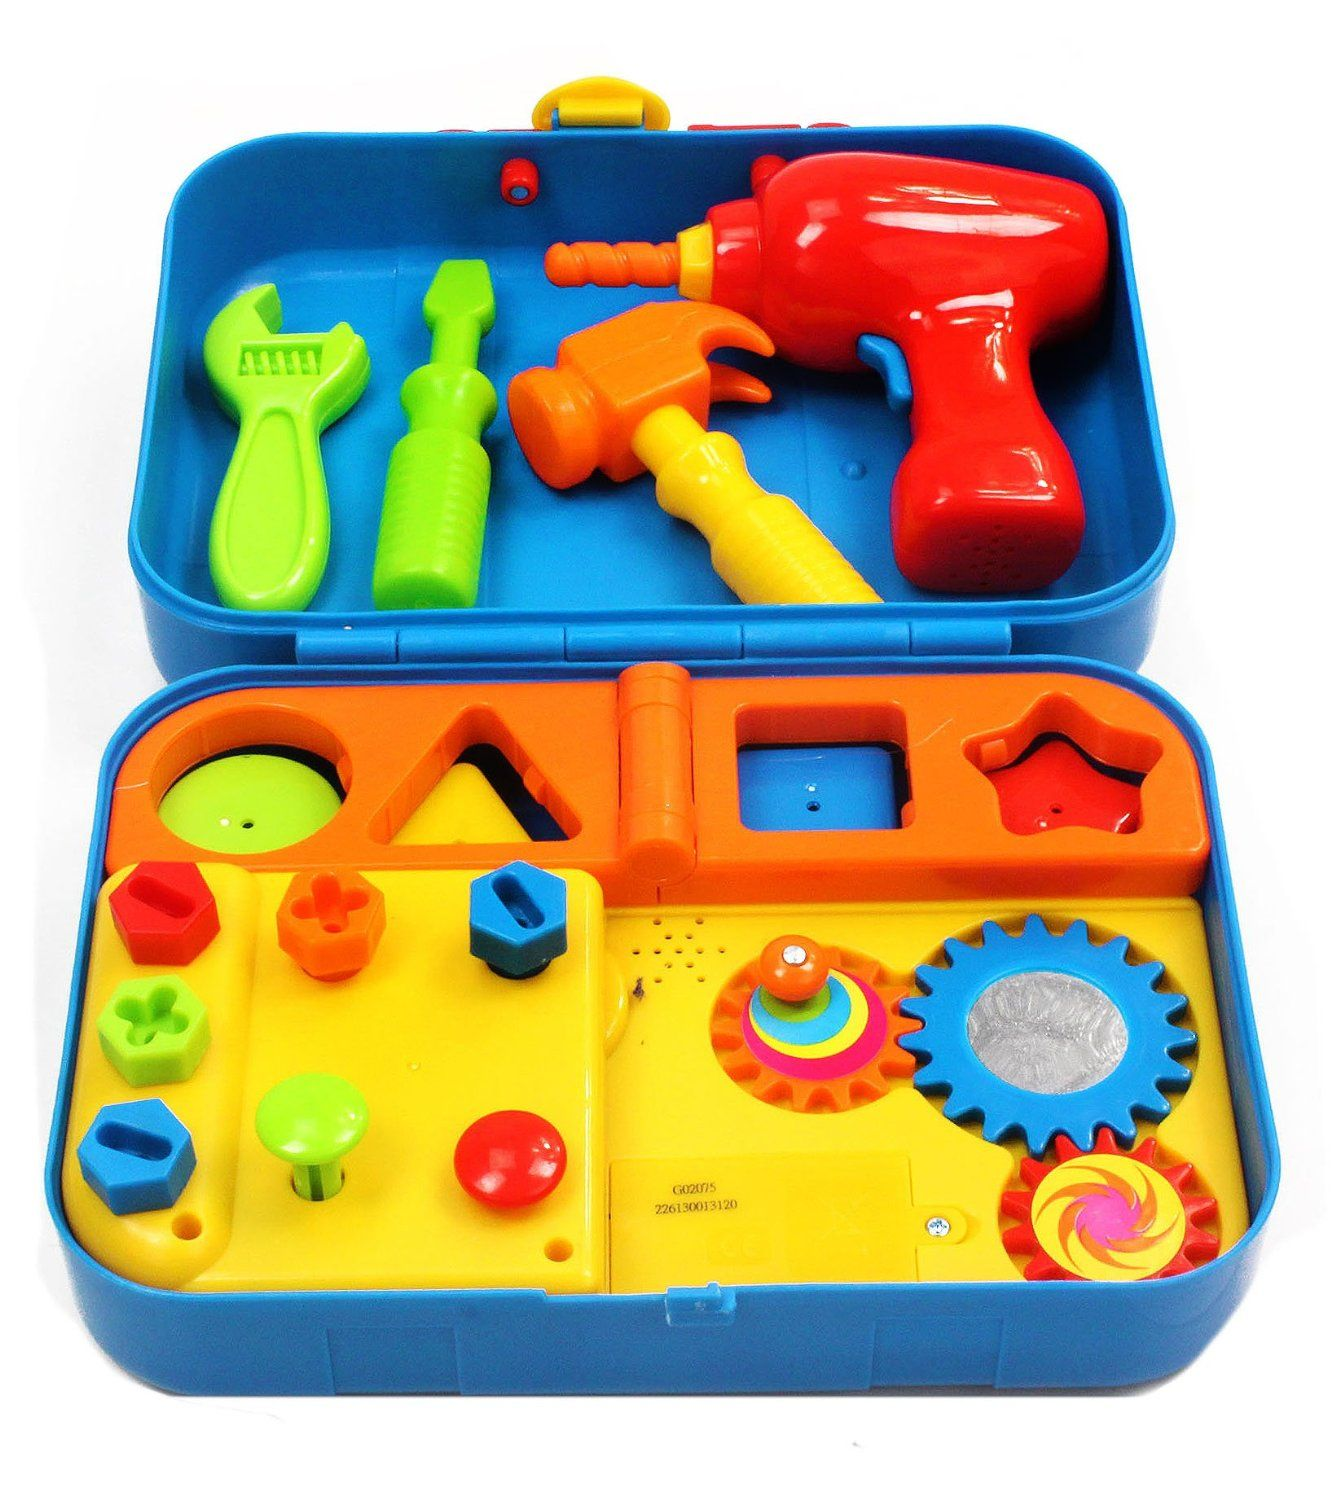 Best Toys For Boys Age 2 : Best gifts for year old boys in toolbox toy and